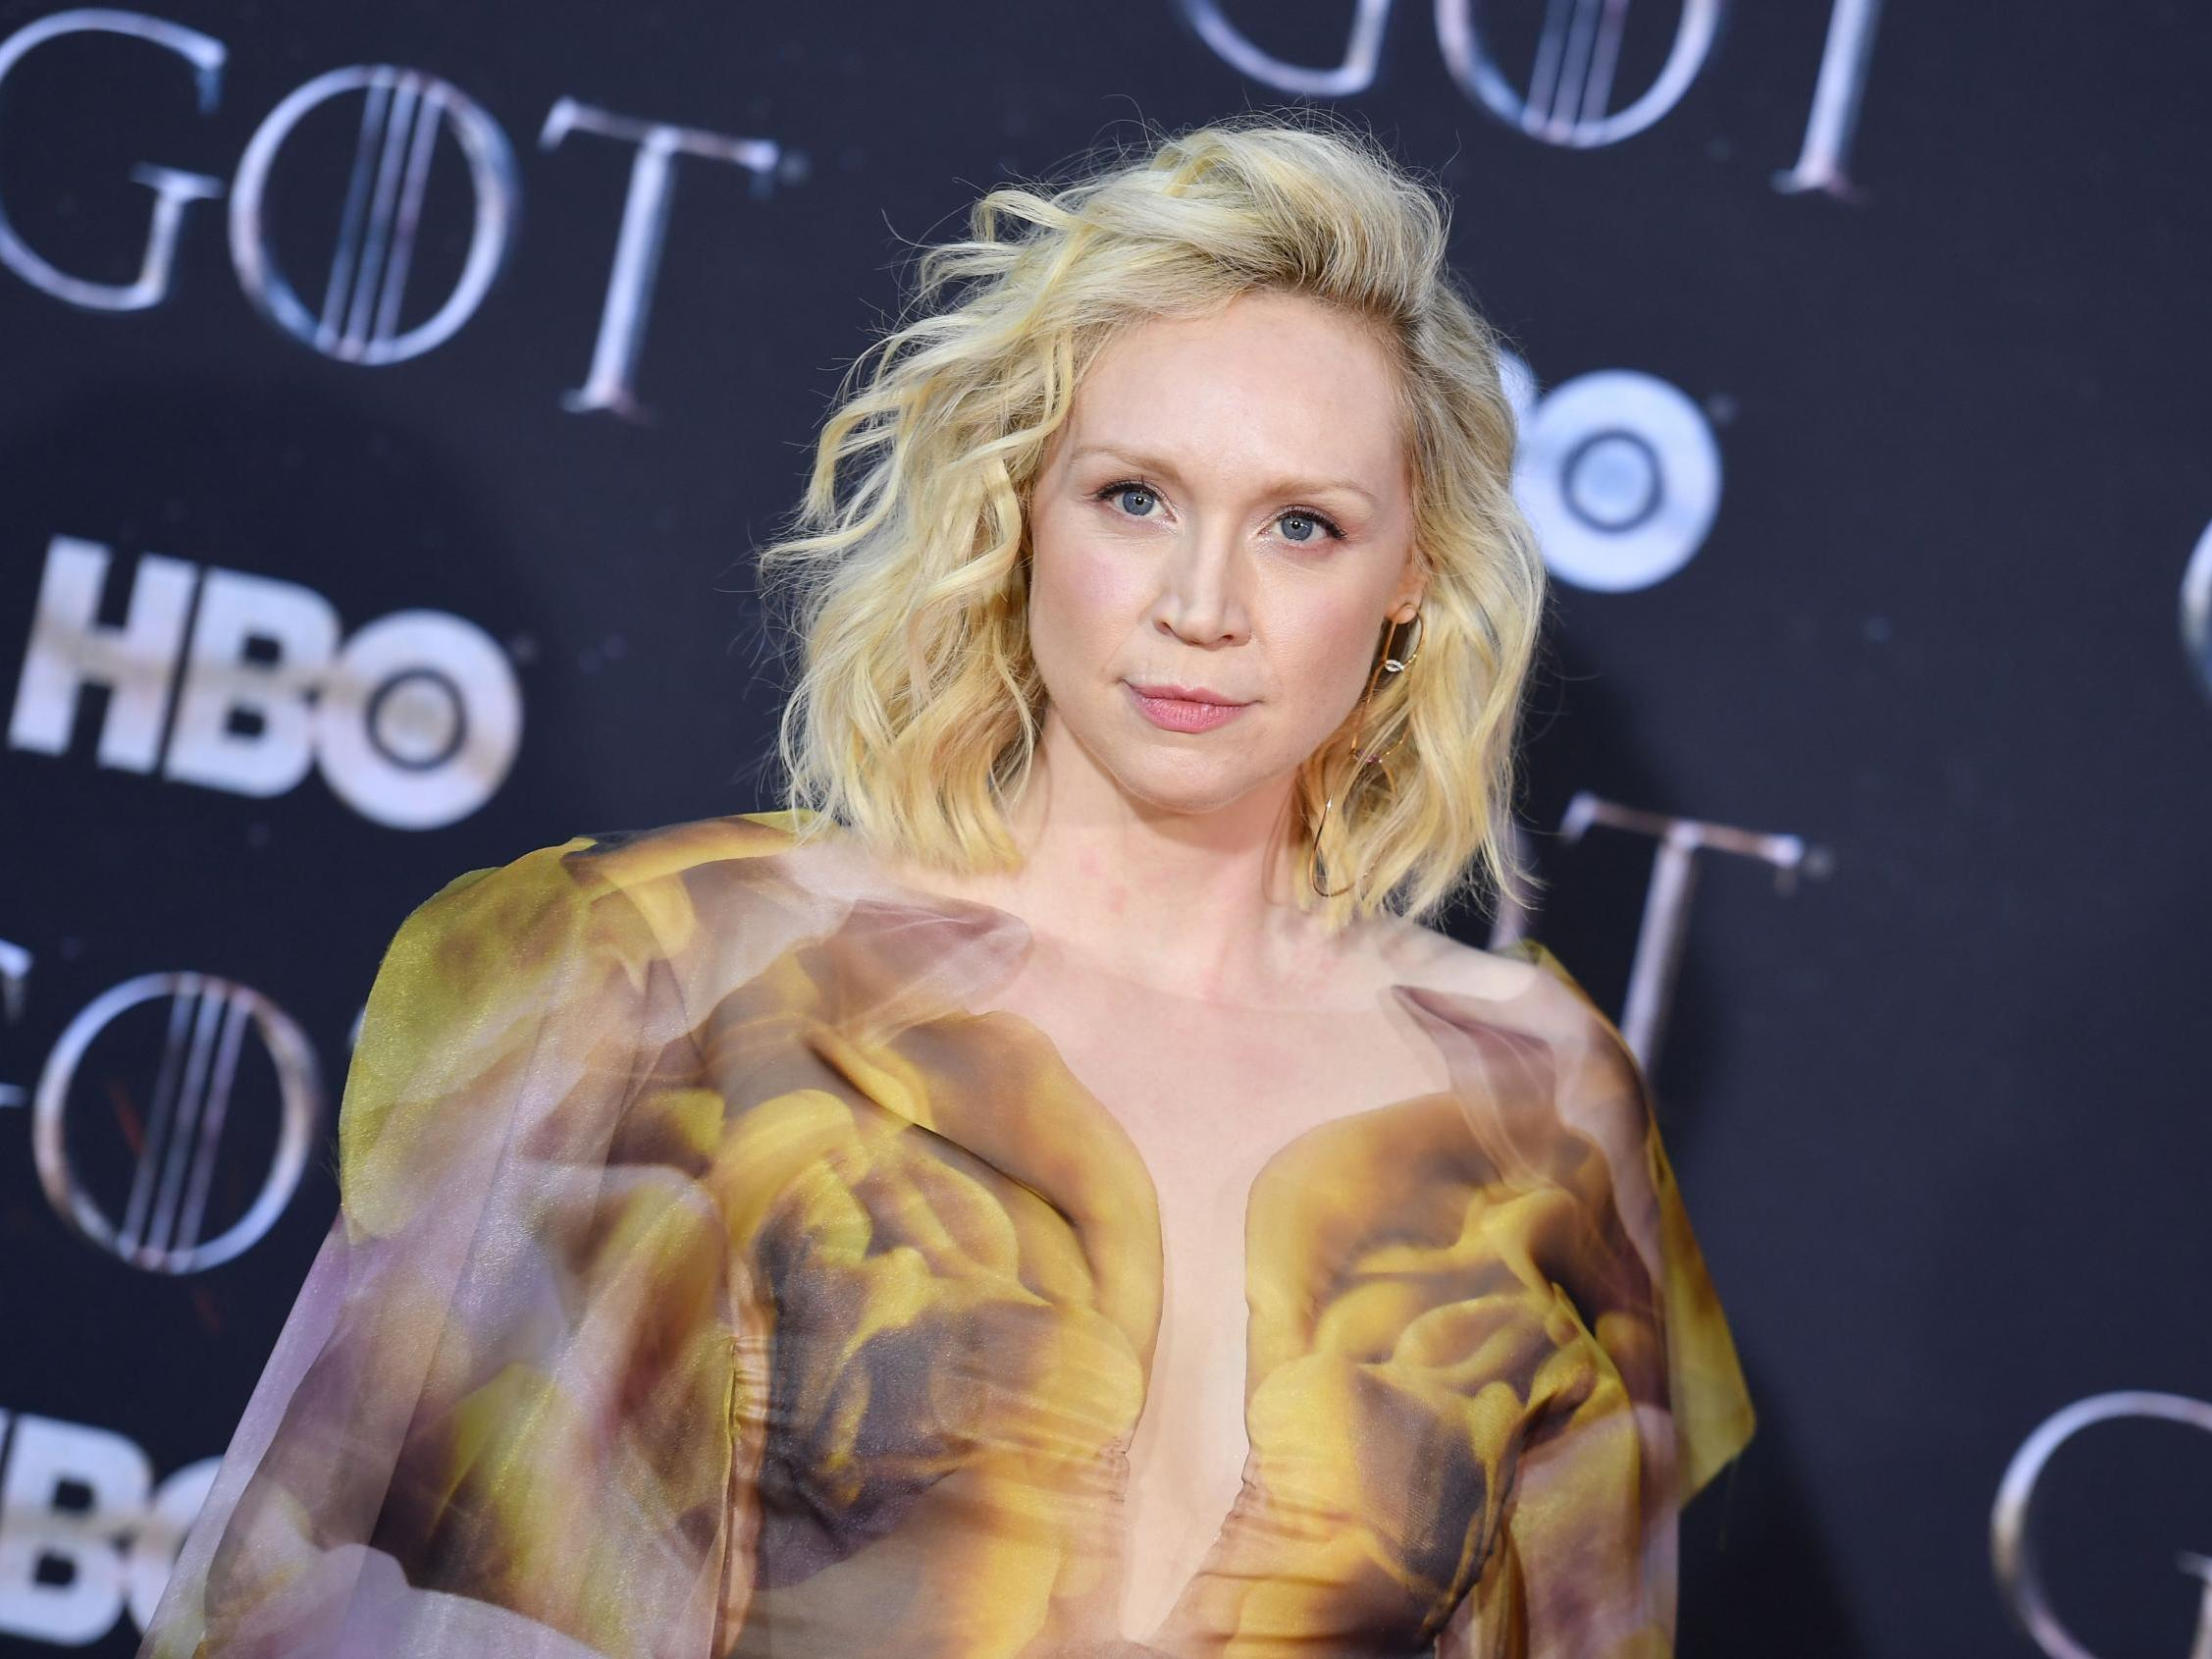 Game of Thrones star Gwendoline Christie says her 'body seems to draw extreme responses from people'